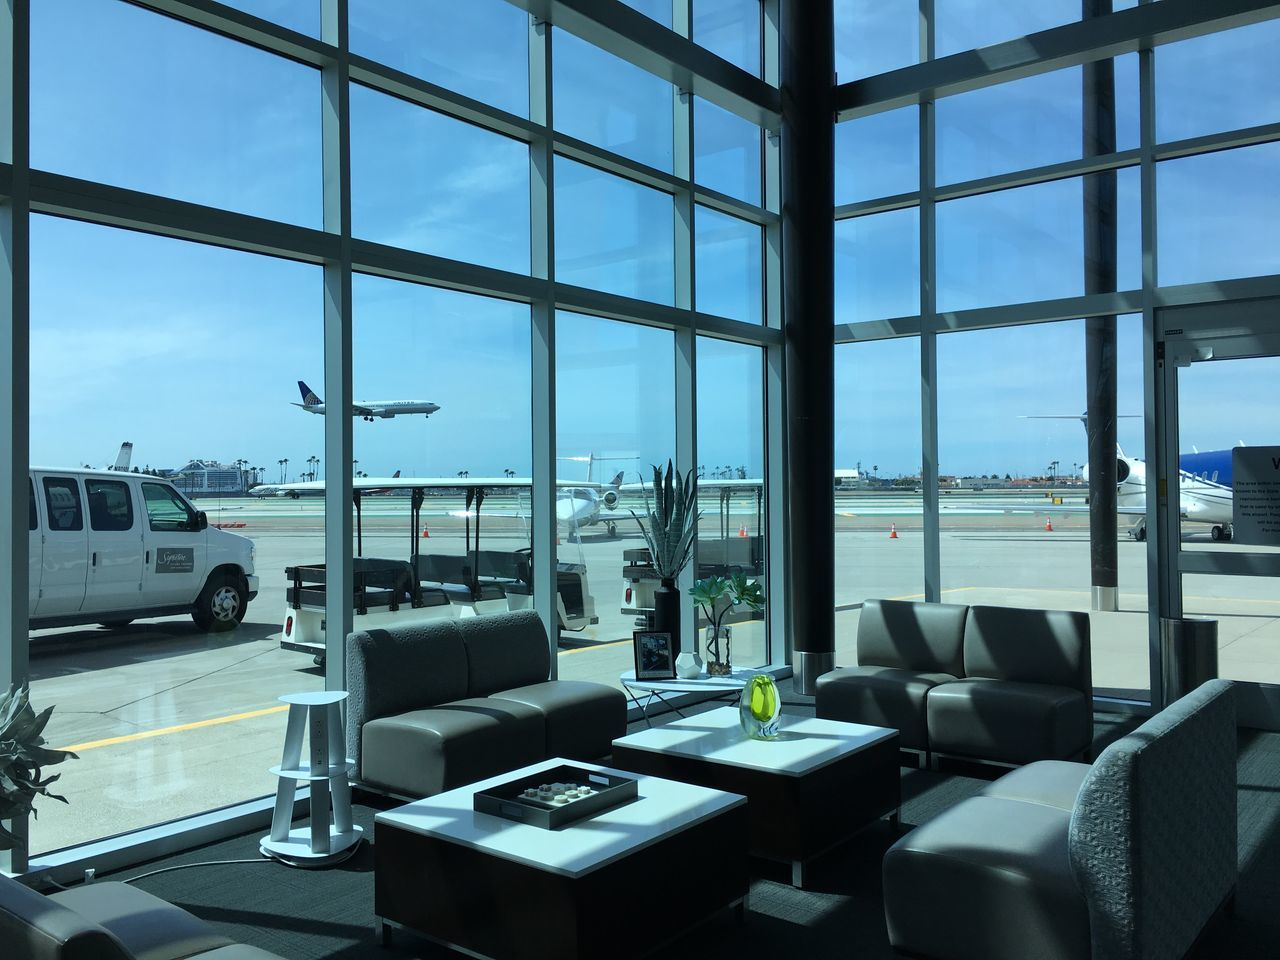 window, indoors, sky, table, transportation, day, luxury, no people, architecture, built structure, modern, seat